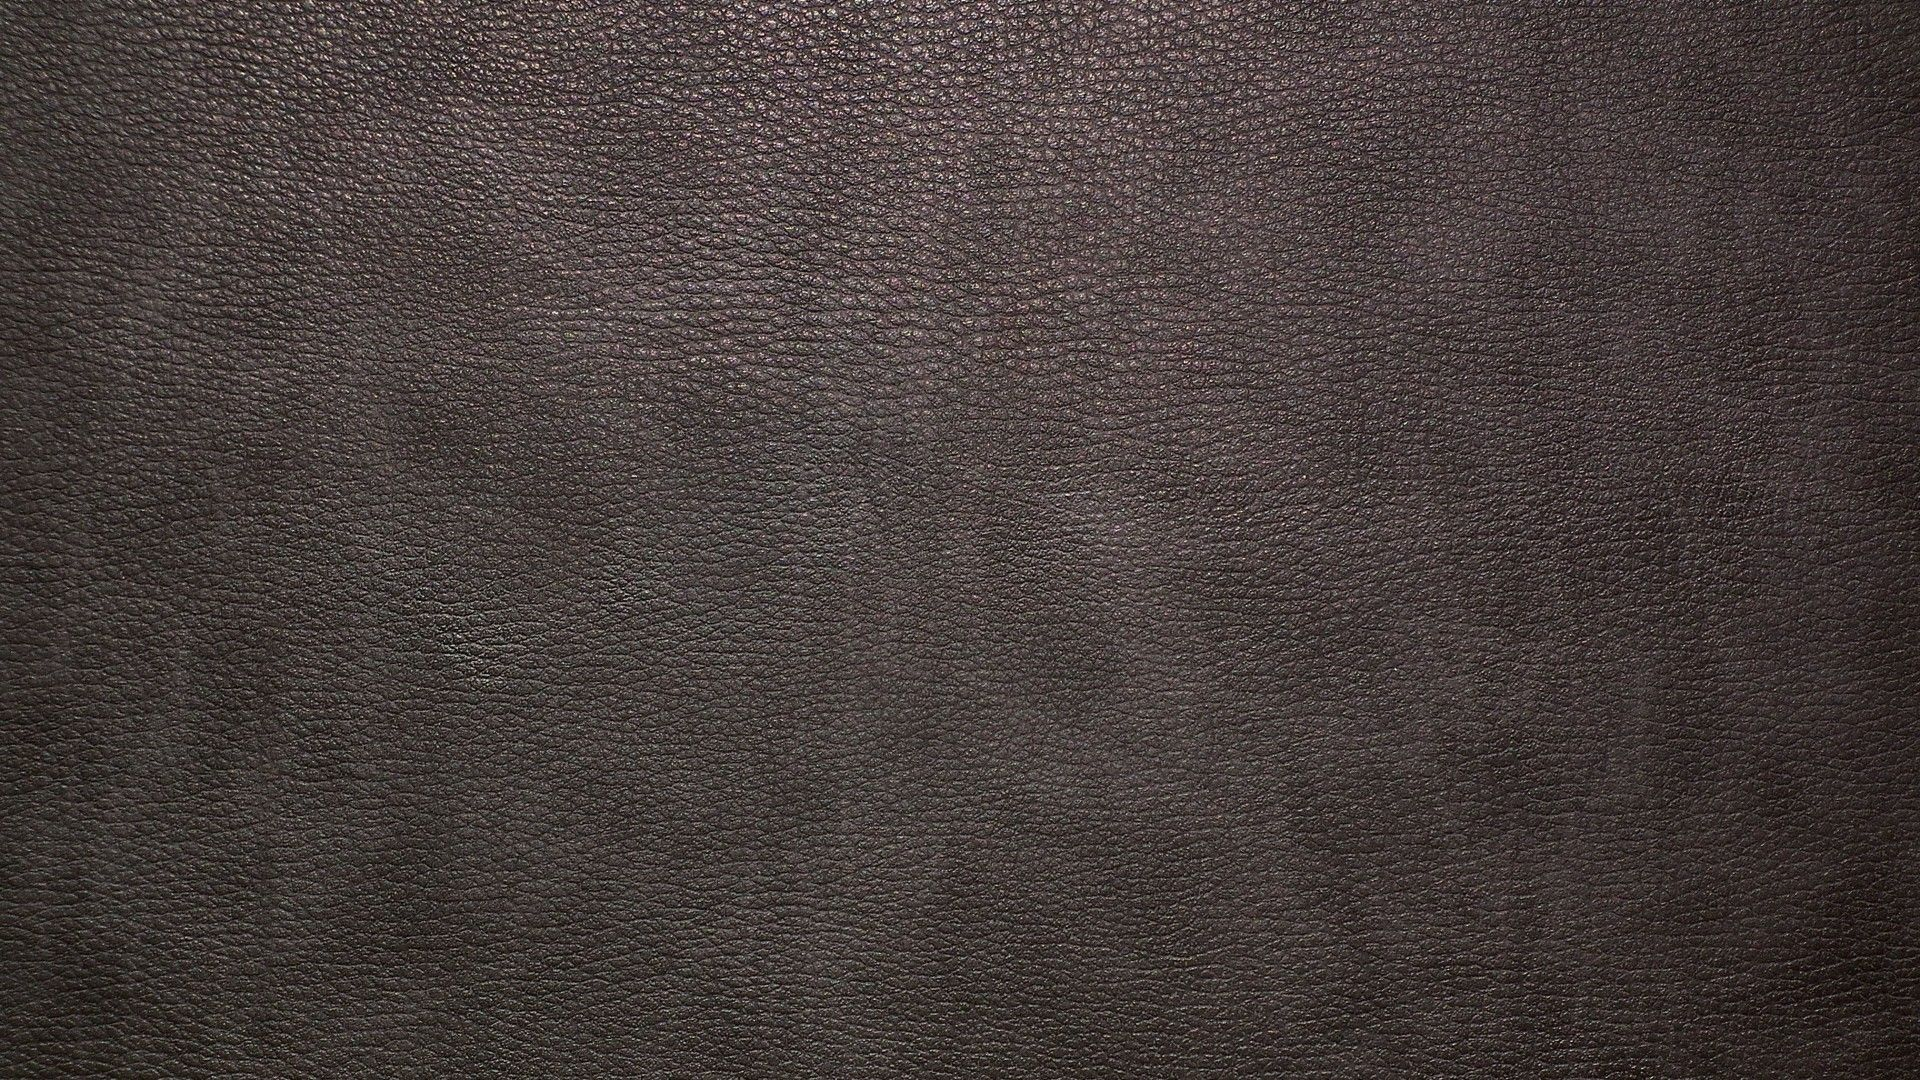 1920x1080 Brown Leather Wallpaper (47+ images)